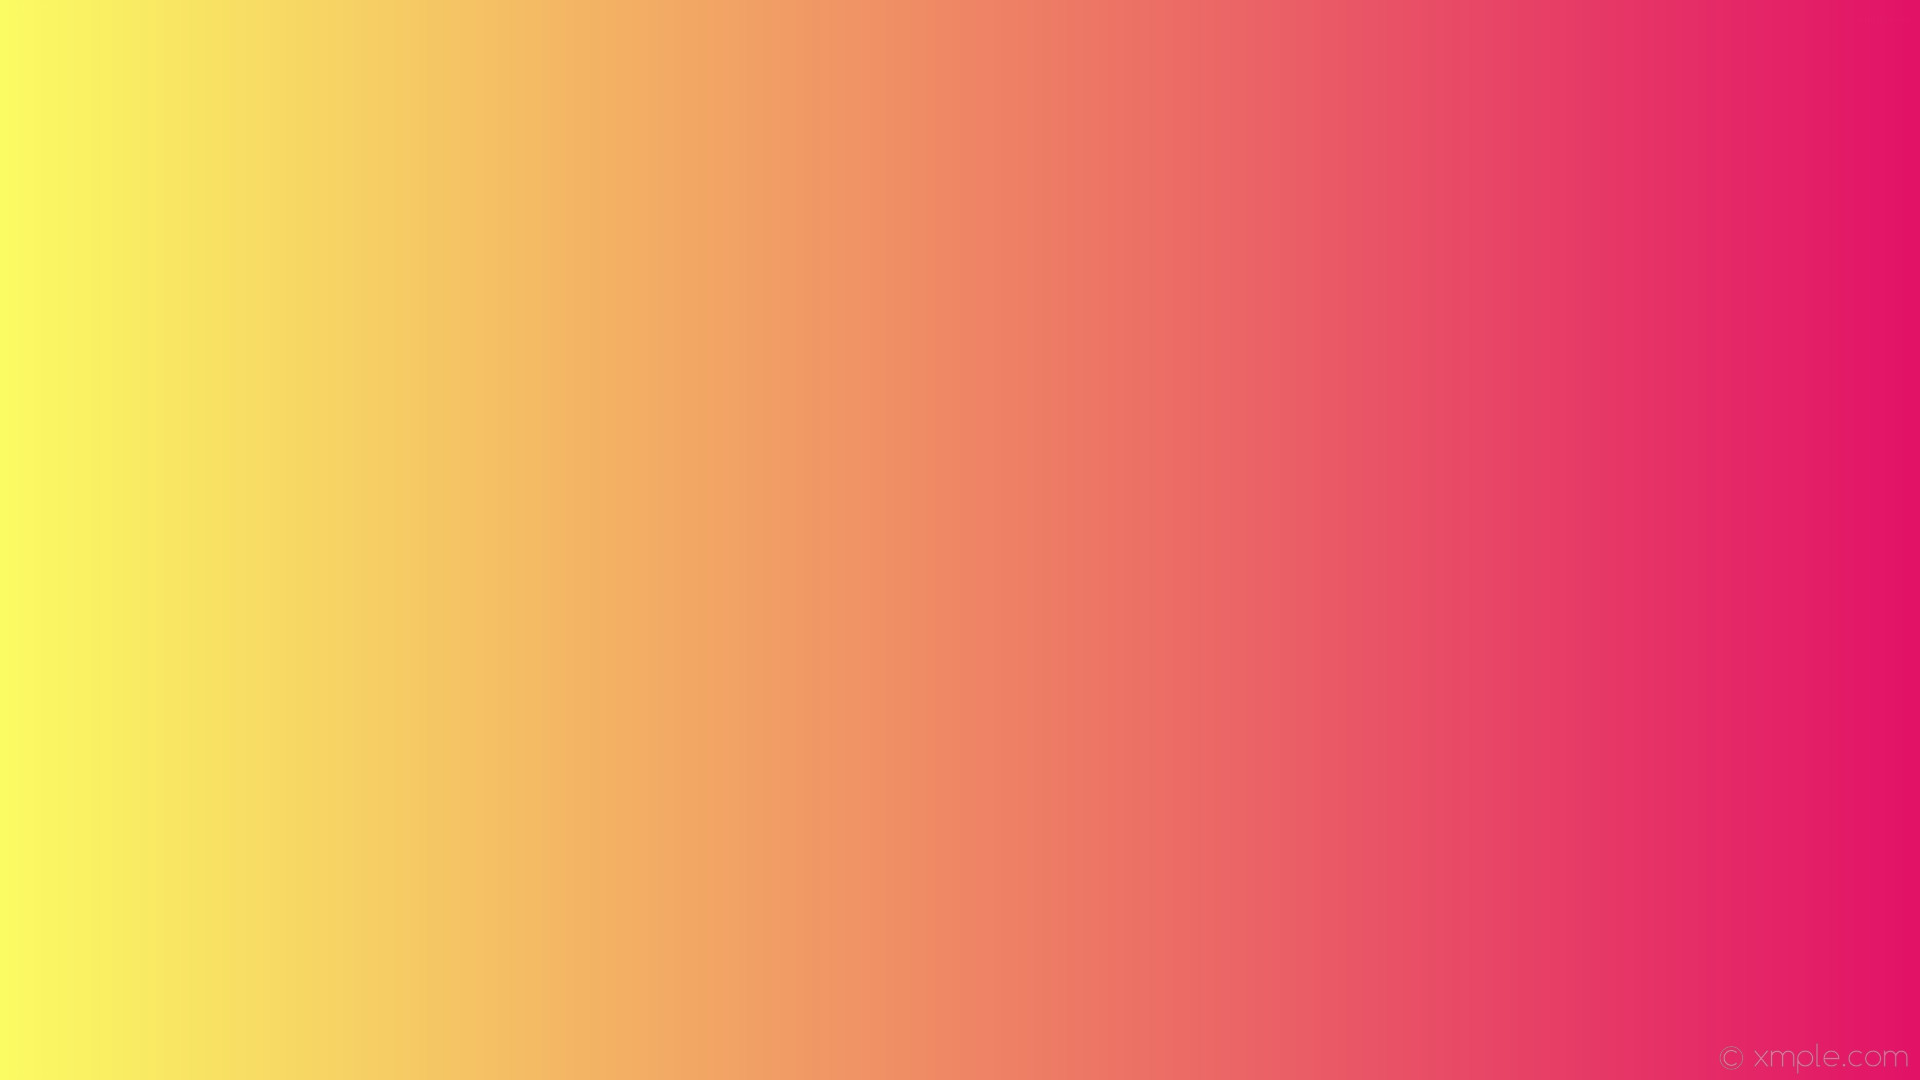 1920x1080 Pink And Yellow Wallpaper